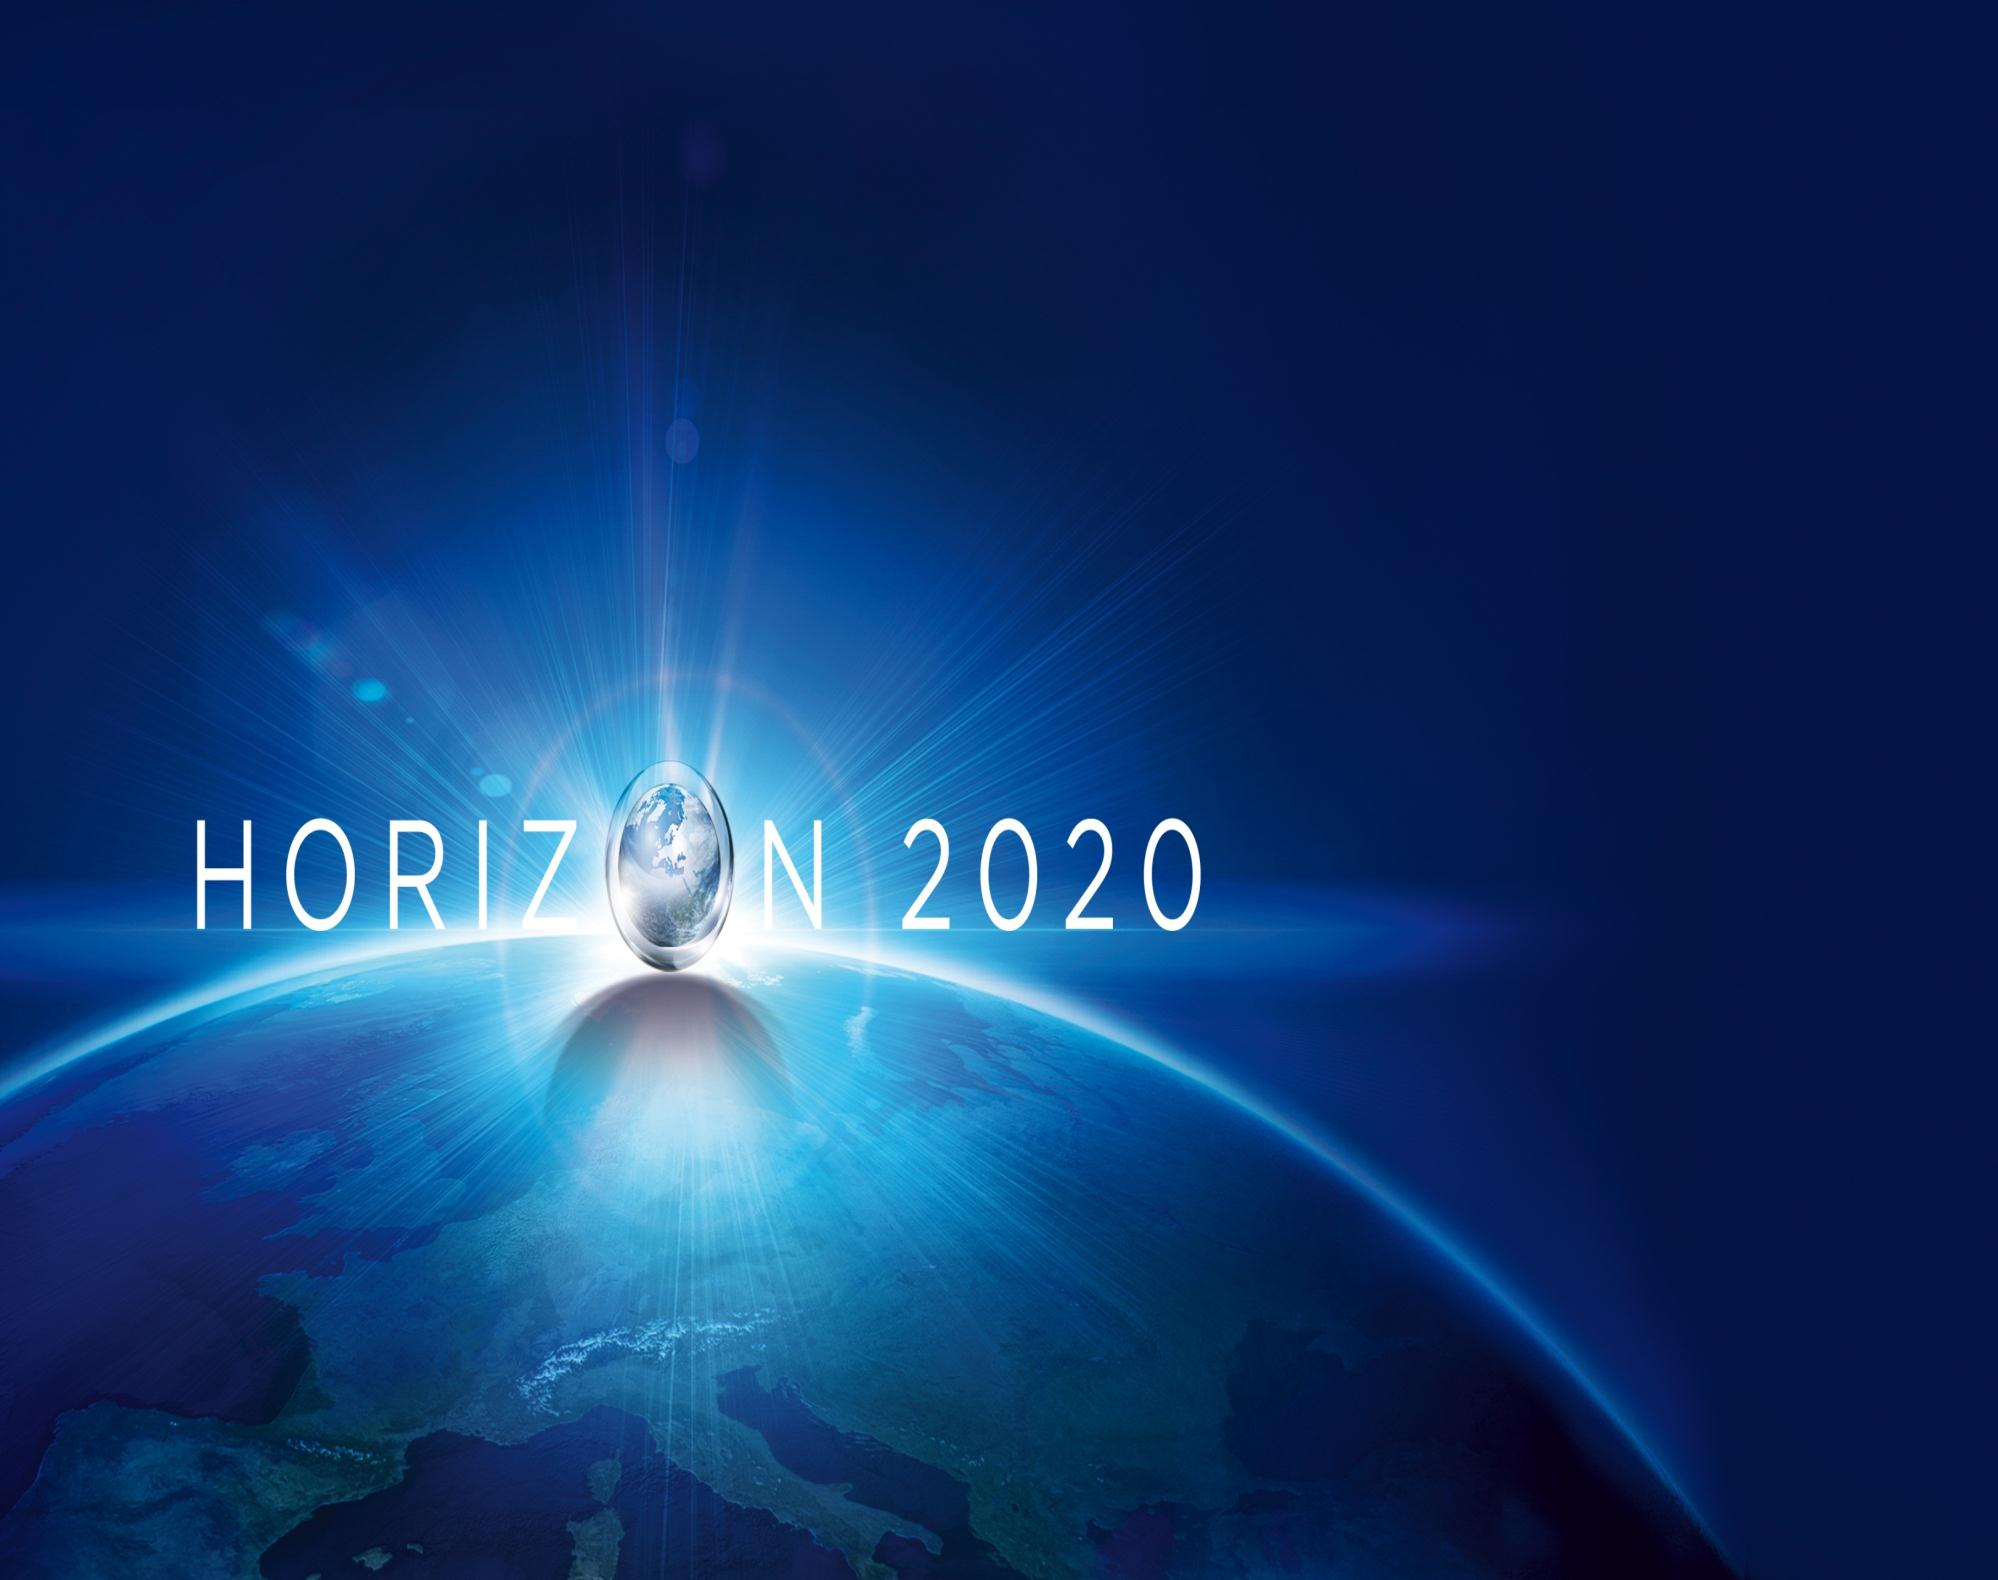 HORIZON 2020 Slides courtesily provided by Unit